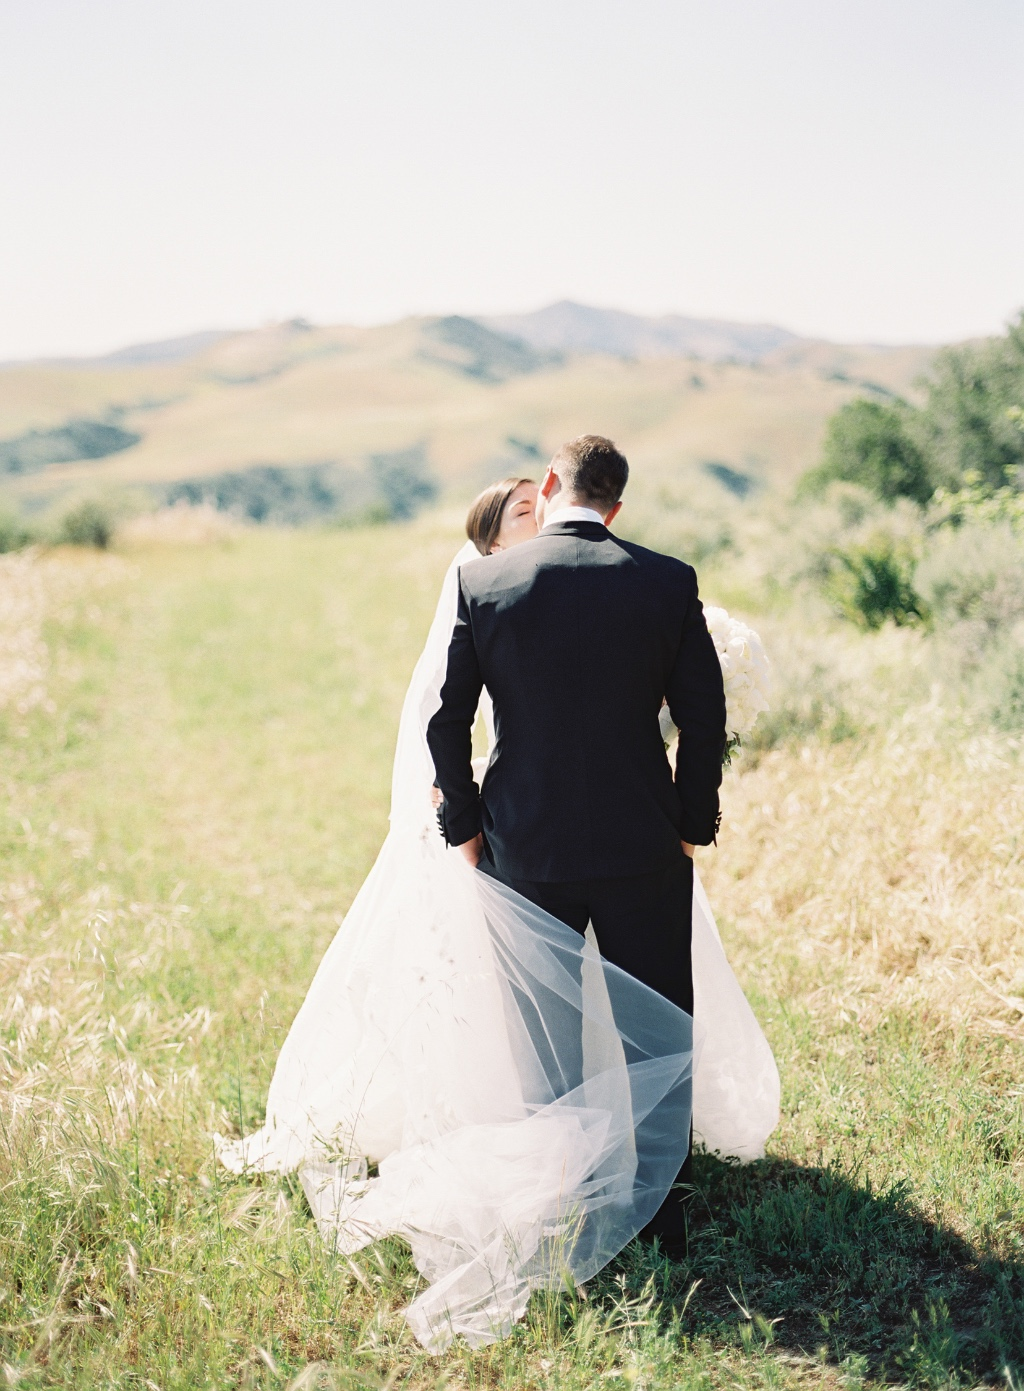 A Formal Floral Wedding in Santa Ynez Wine Country featuring a stunning Carolina Herrera Wedding Gown and valley views for days.